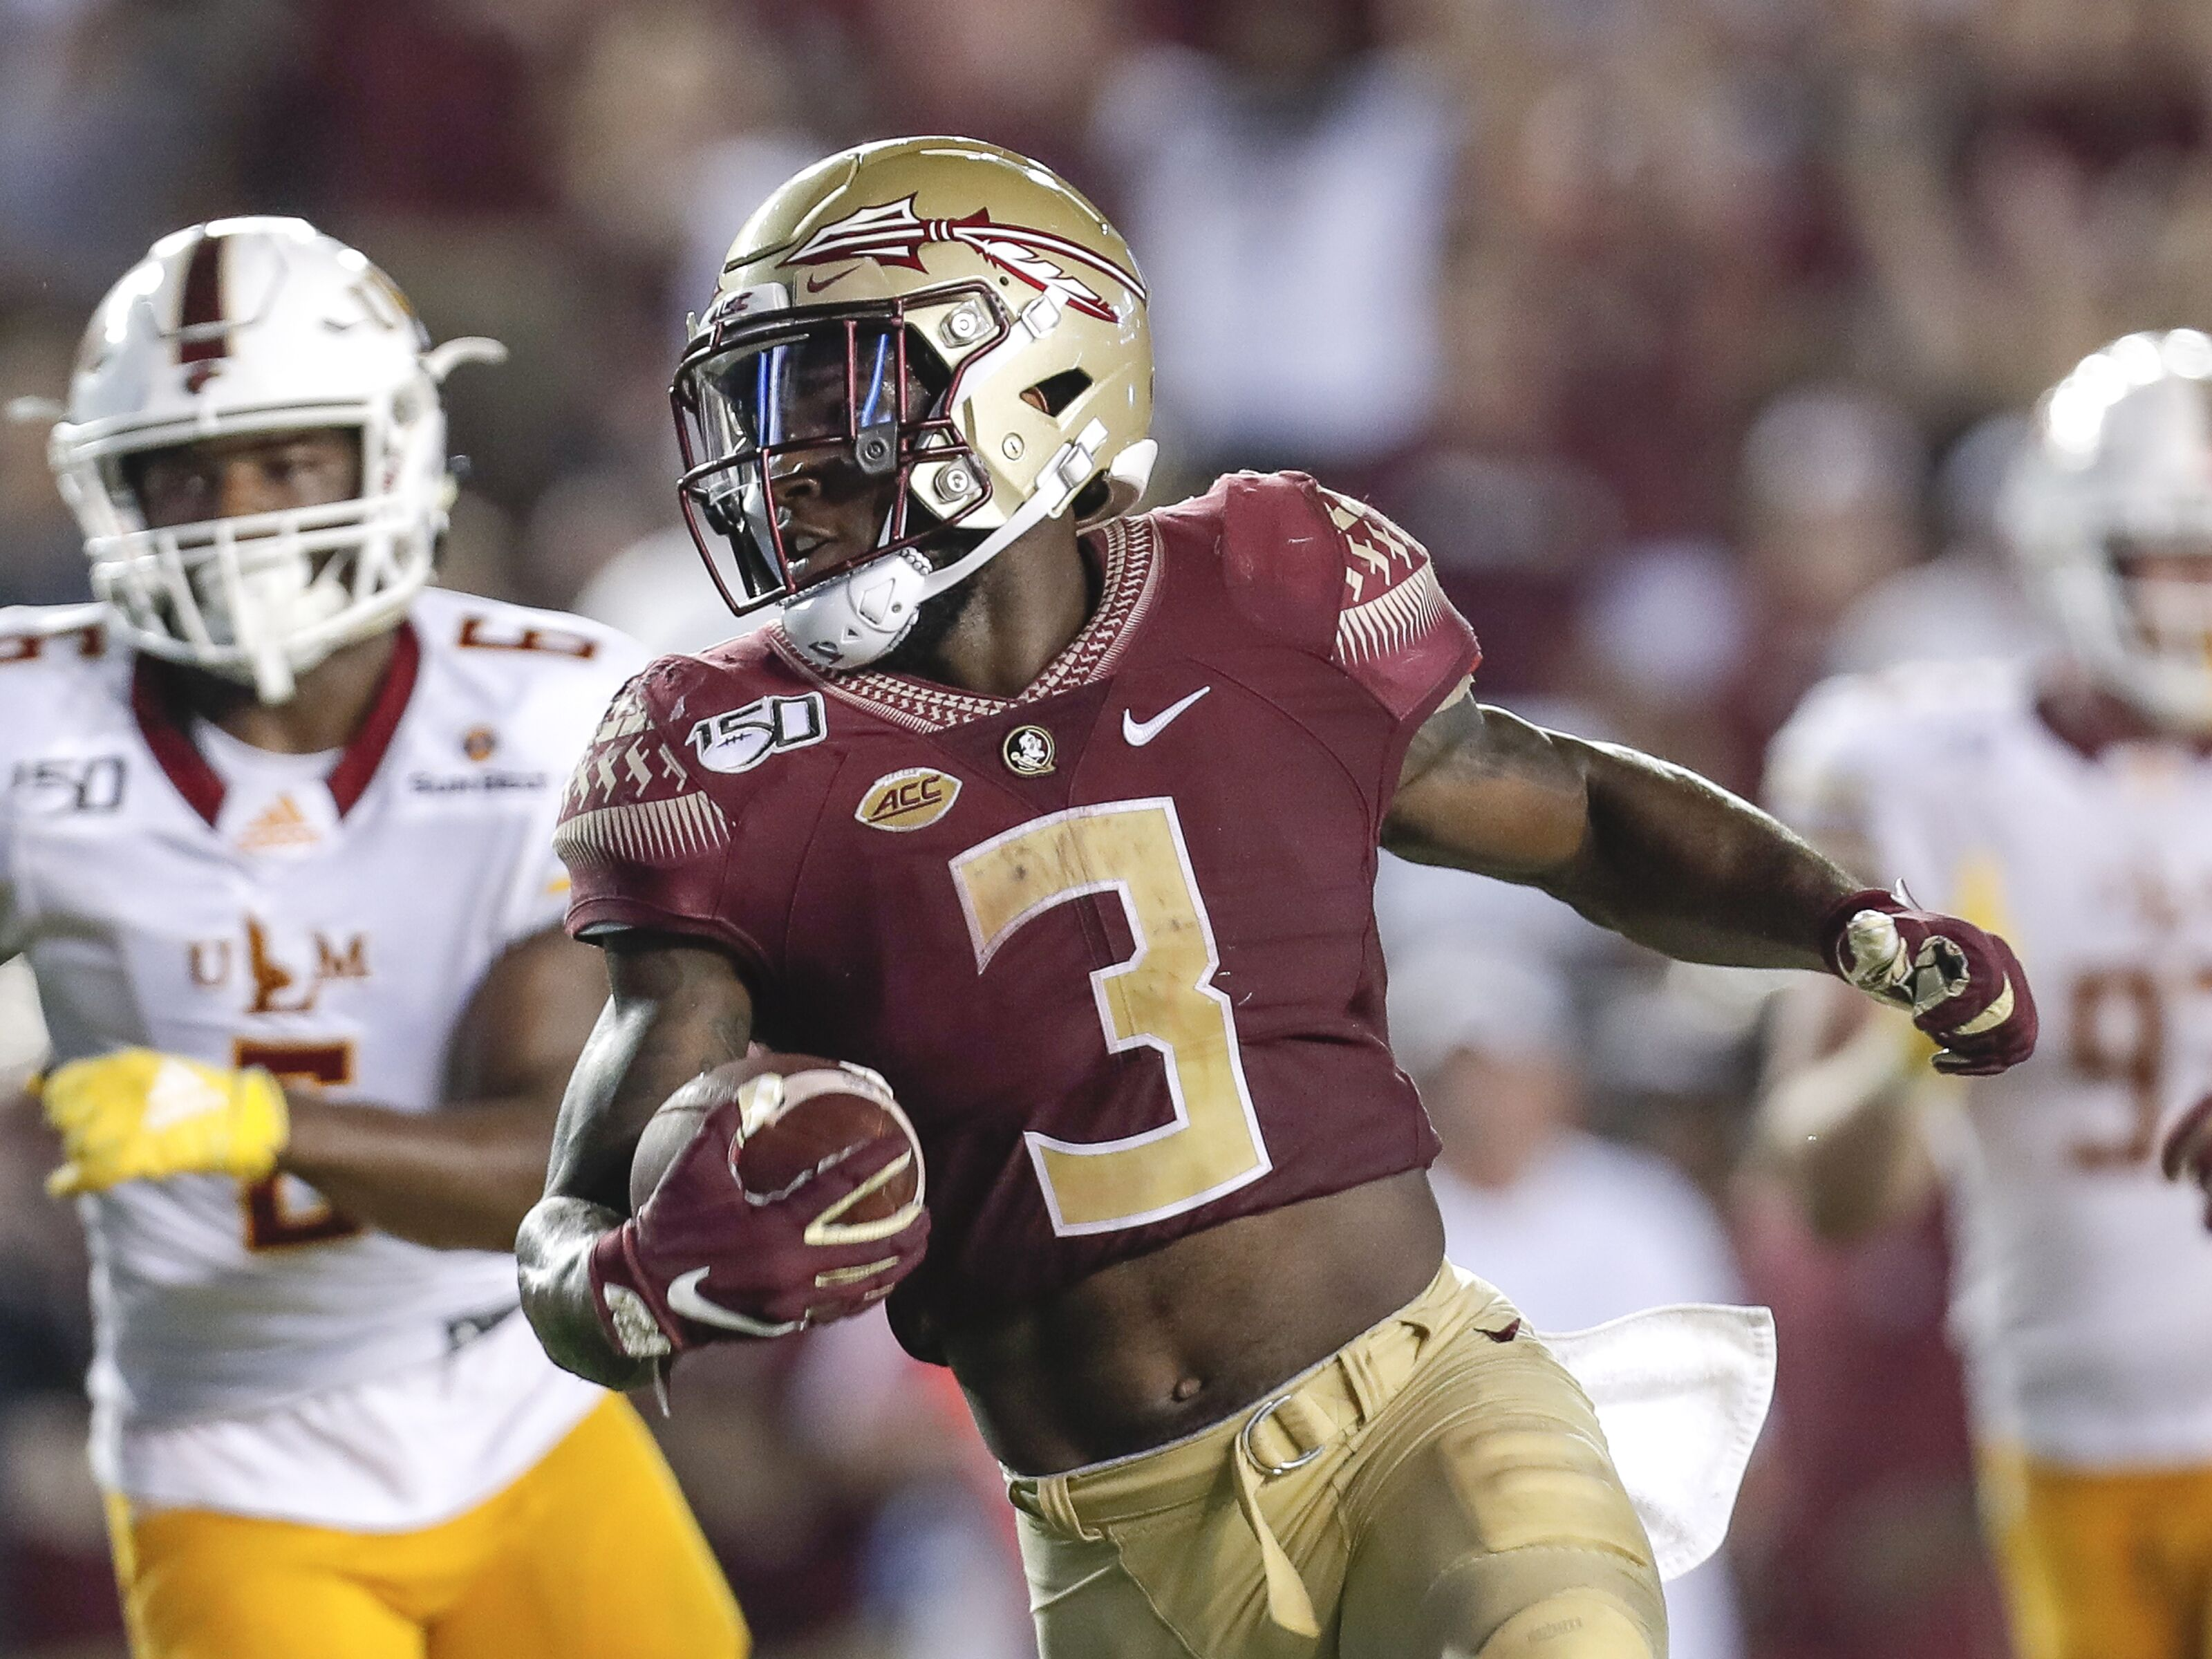 Florida State vs. Virginia prediction, odds: How to bet and watch online